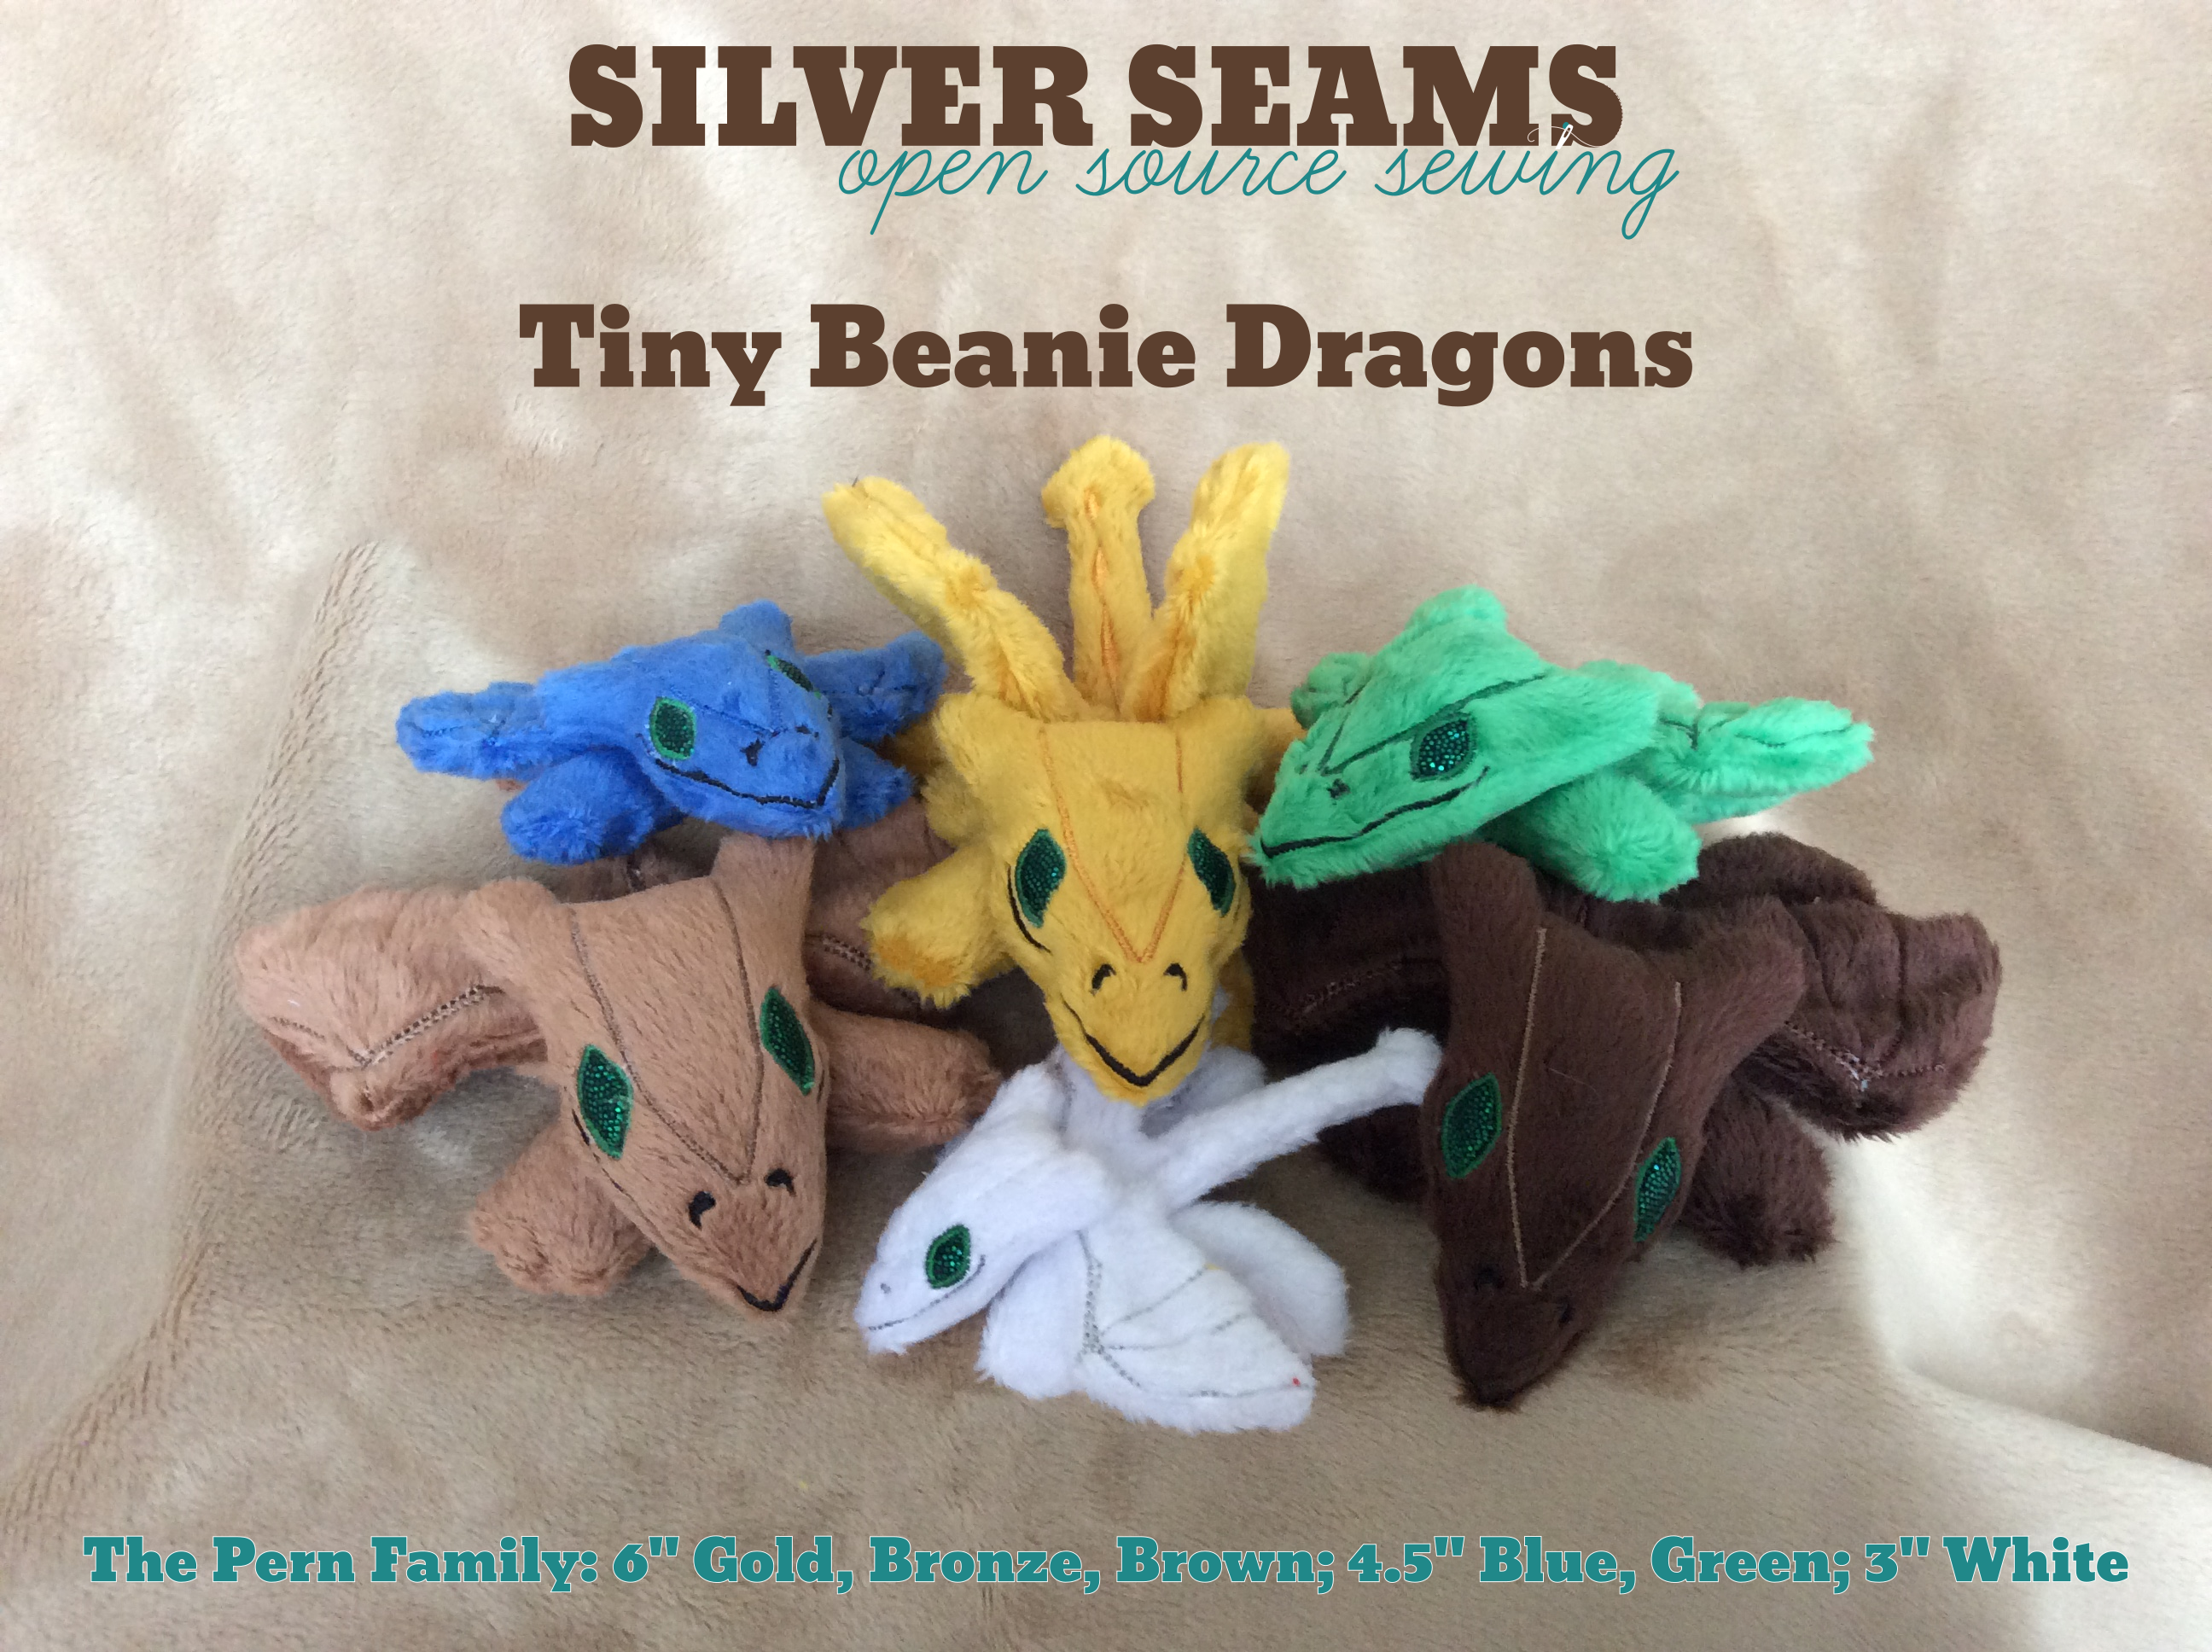 Etsy listing image for the beanie dragons